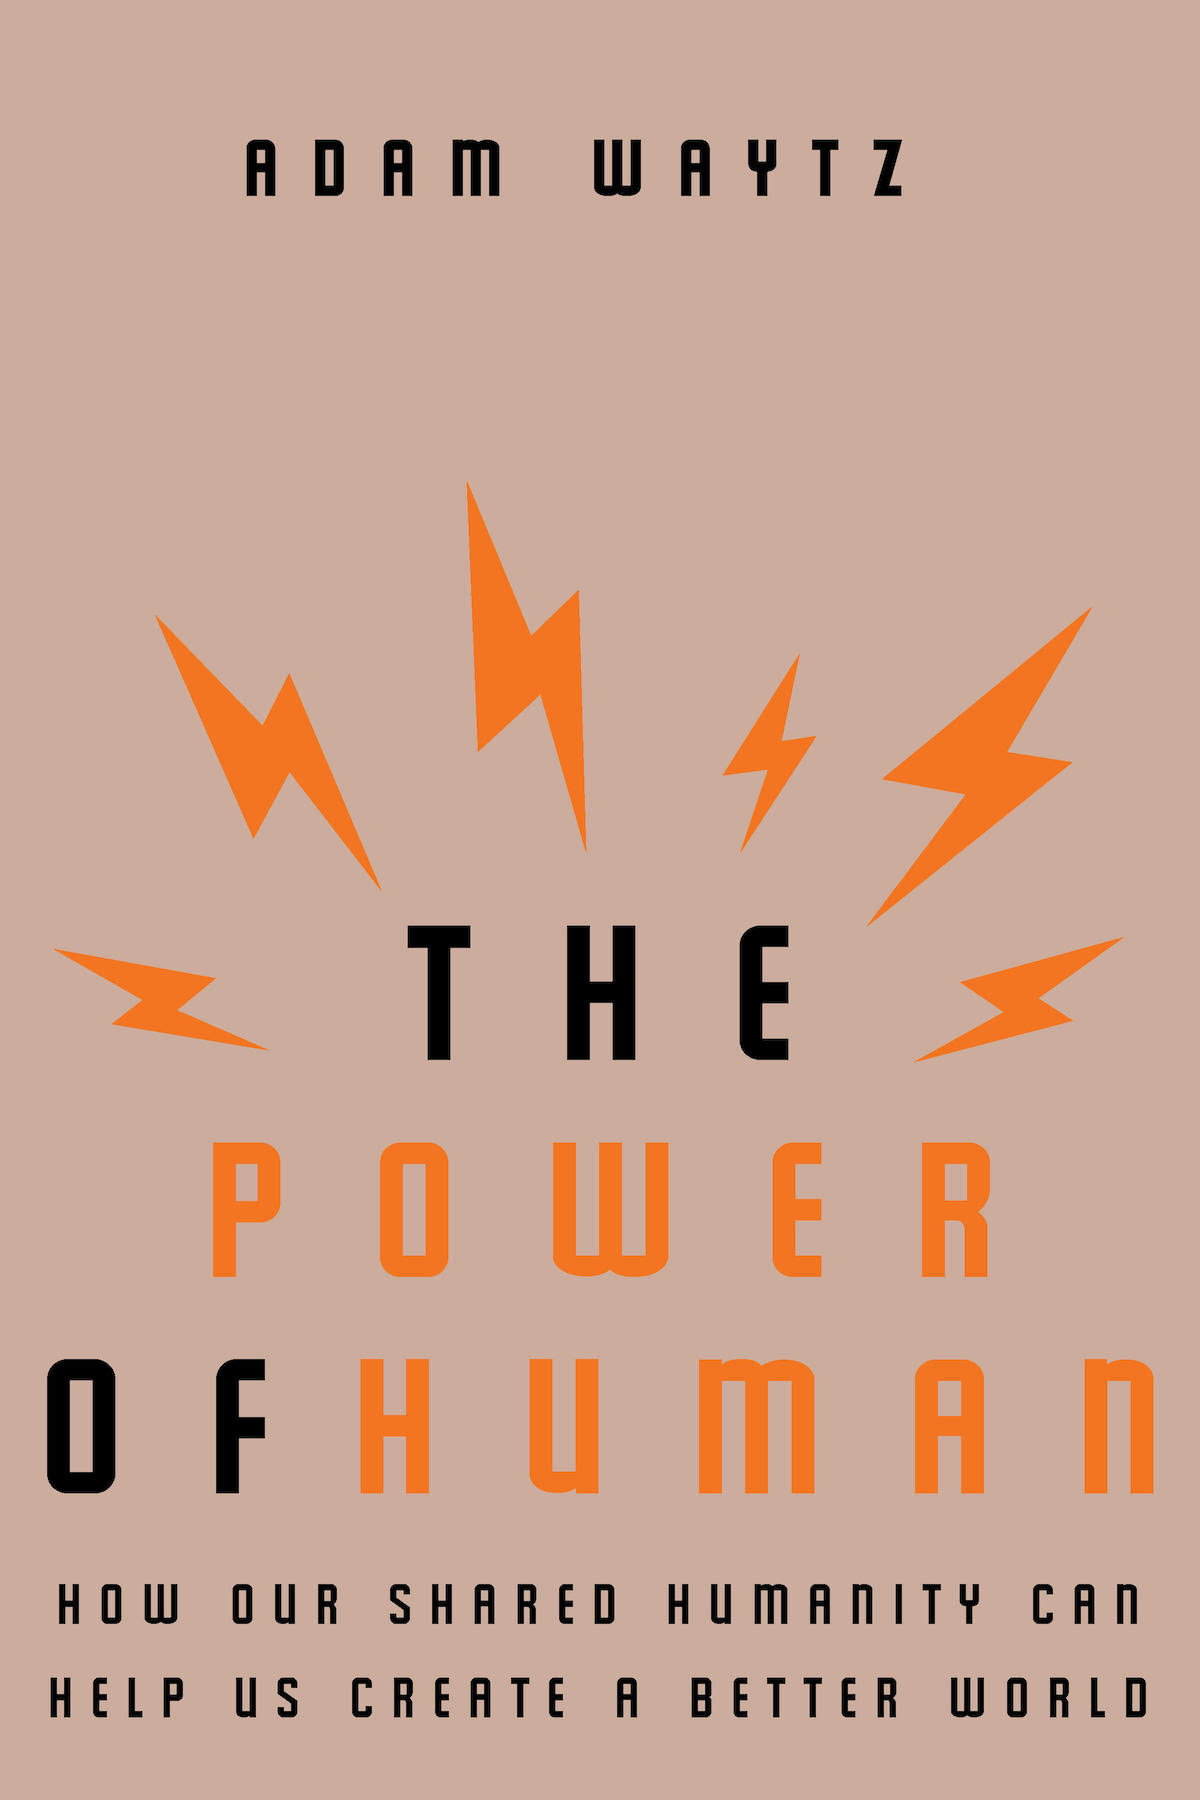 the-power-of-human.jpg